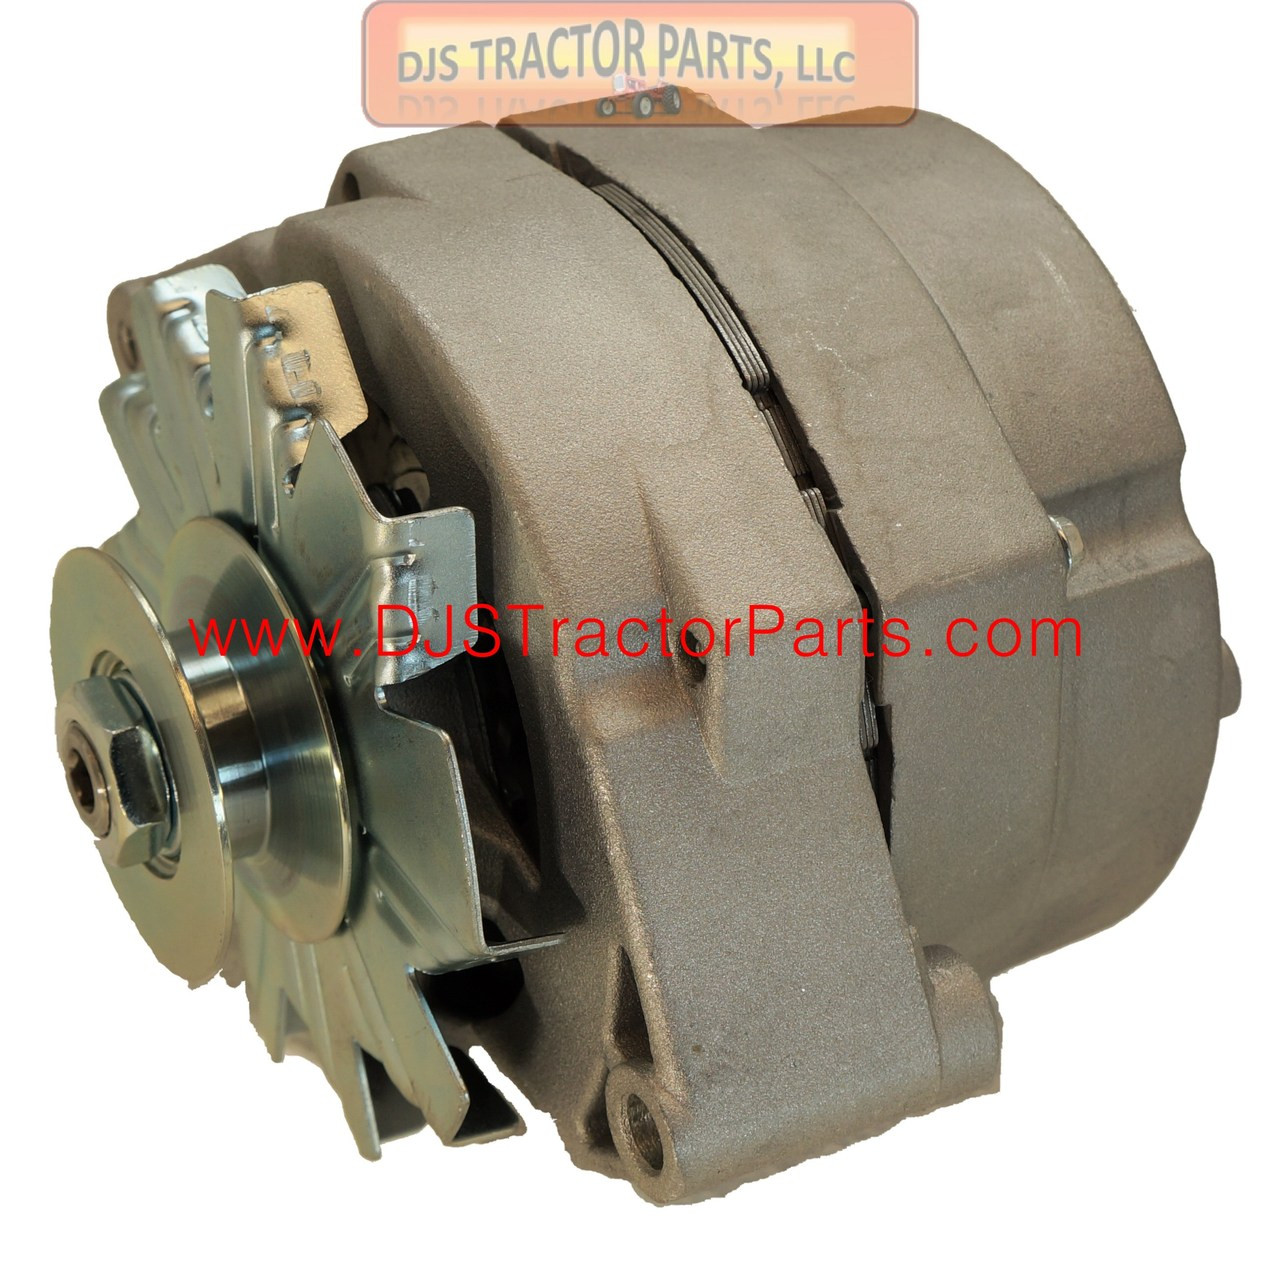 63 Amp One Wire Alternator With Pulley Used For Converting 6 Volt 8n Ford Ammeter 12v Wiring To 12